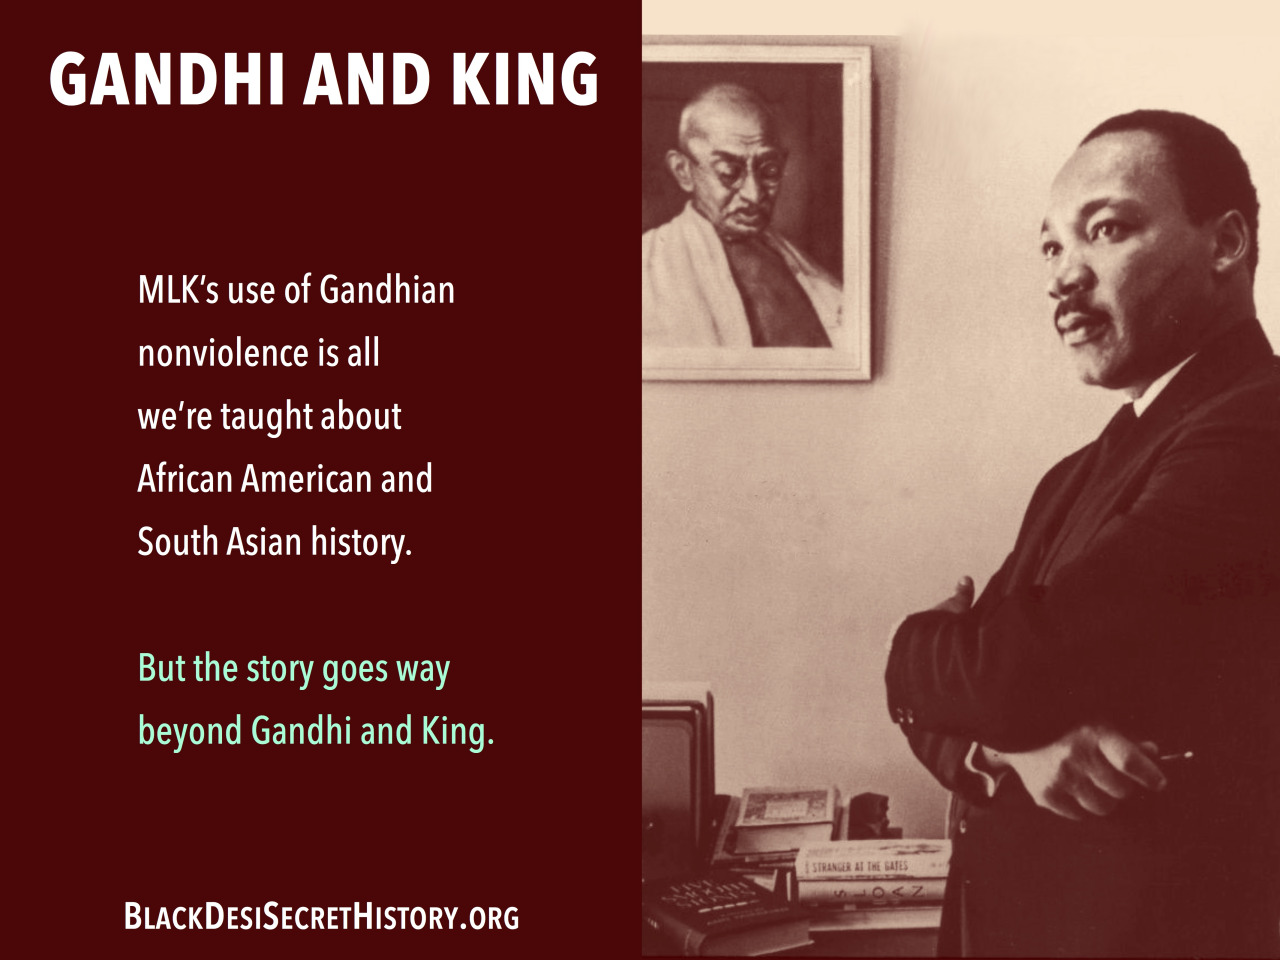 The Secret History of South Asian and African American History http://blackdesisecrethistory.org/